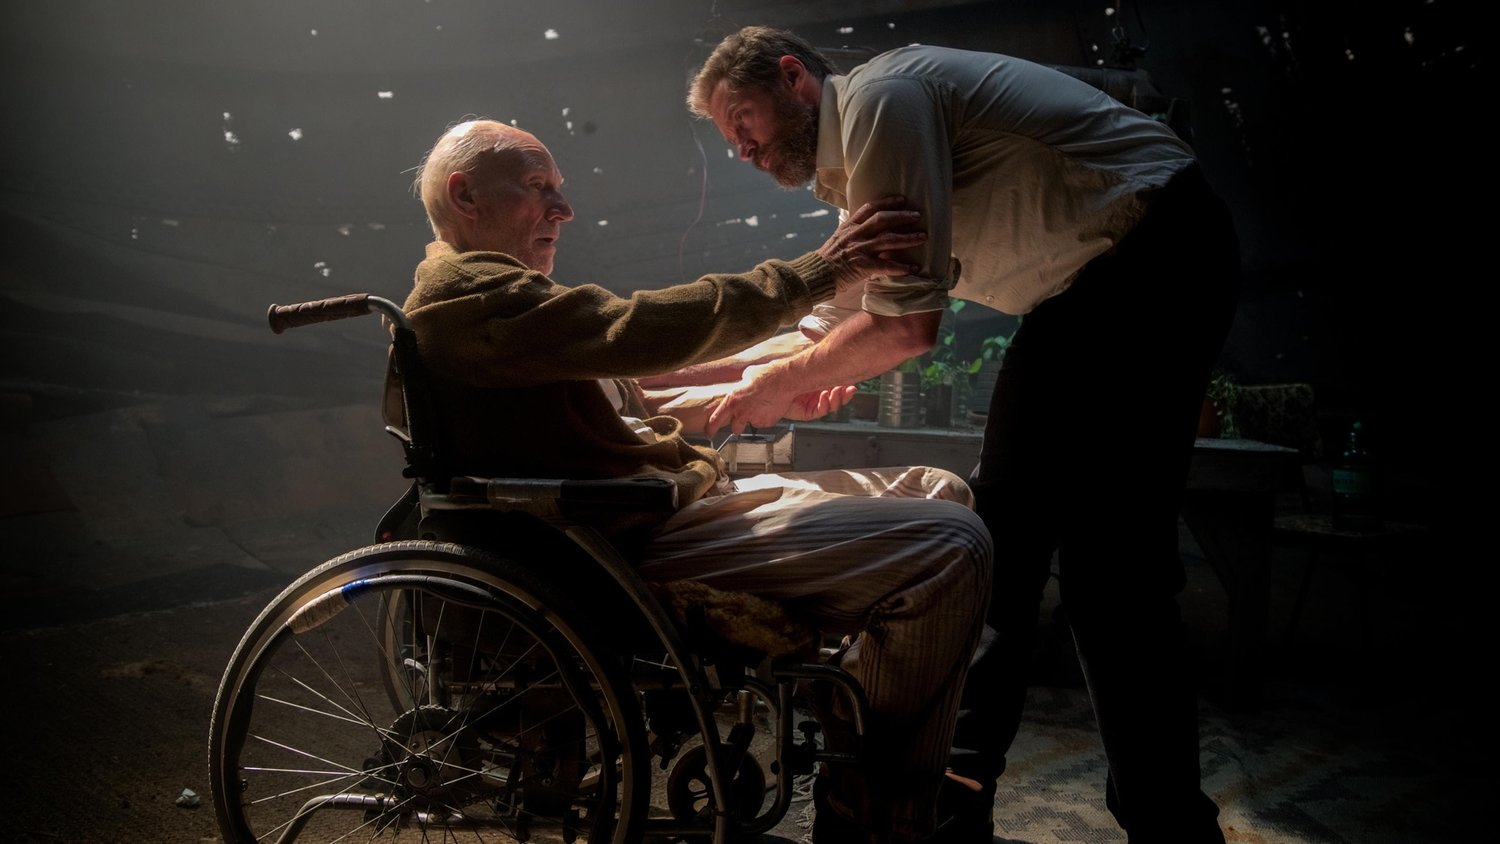 Patrick Stewart Announces He's Retiring as Professor X After LOGAN